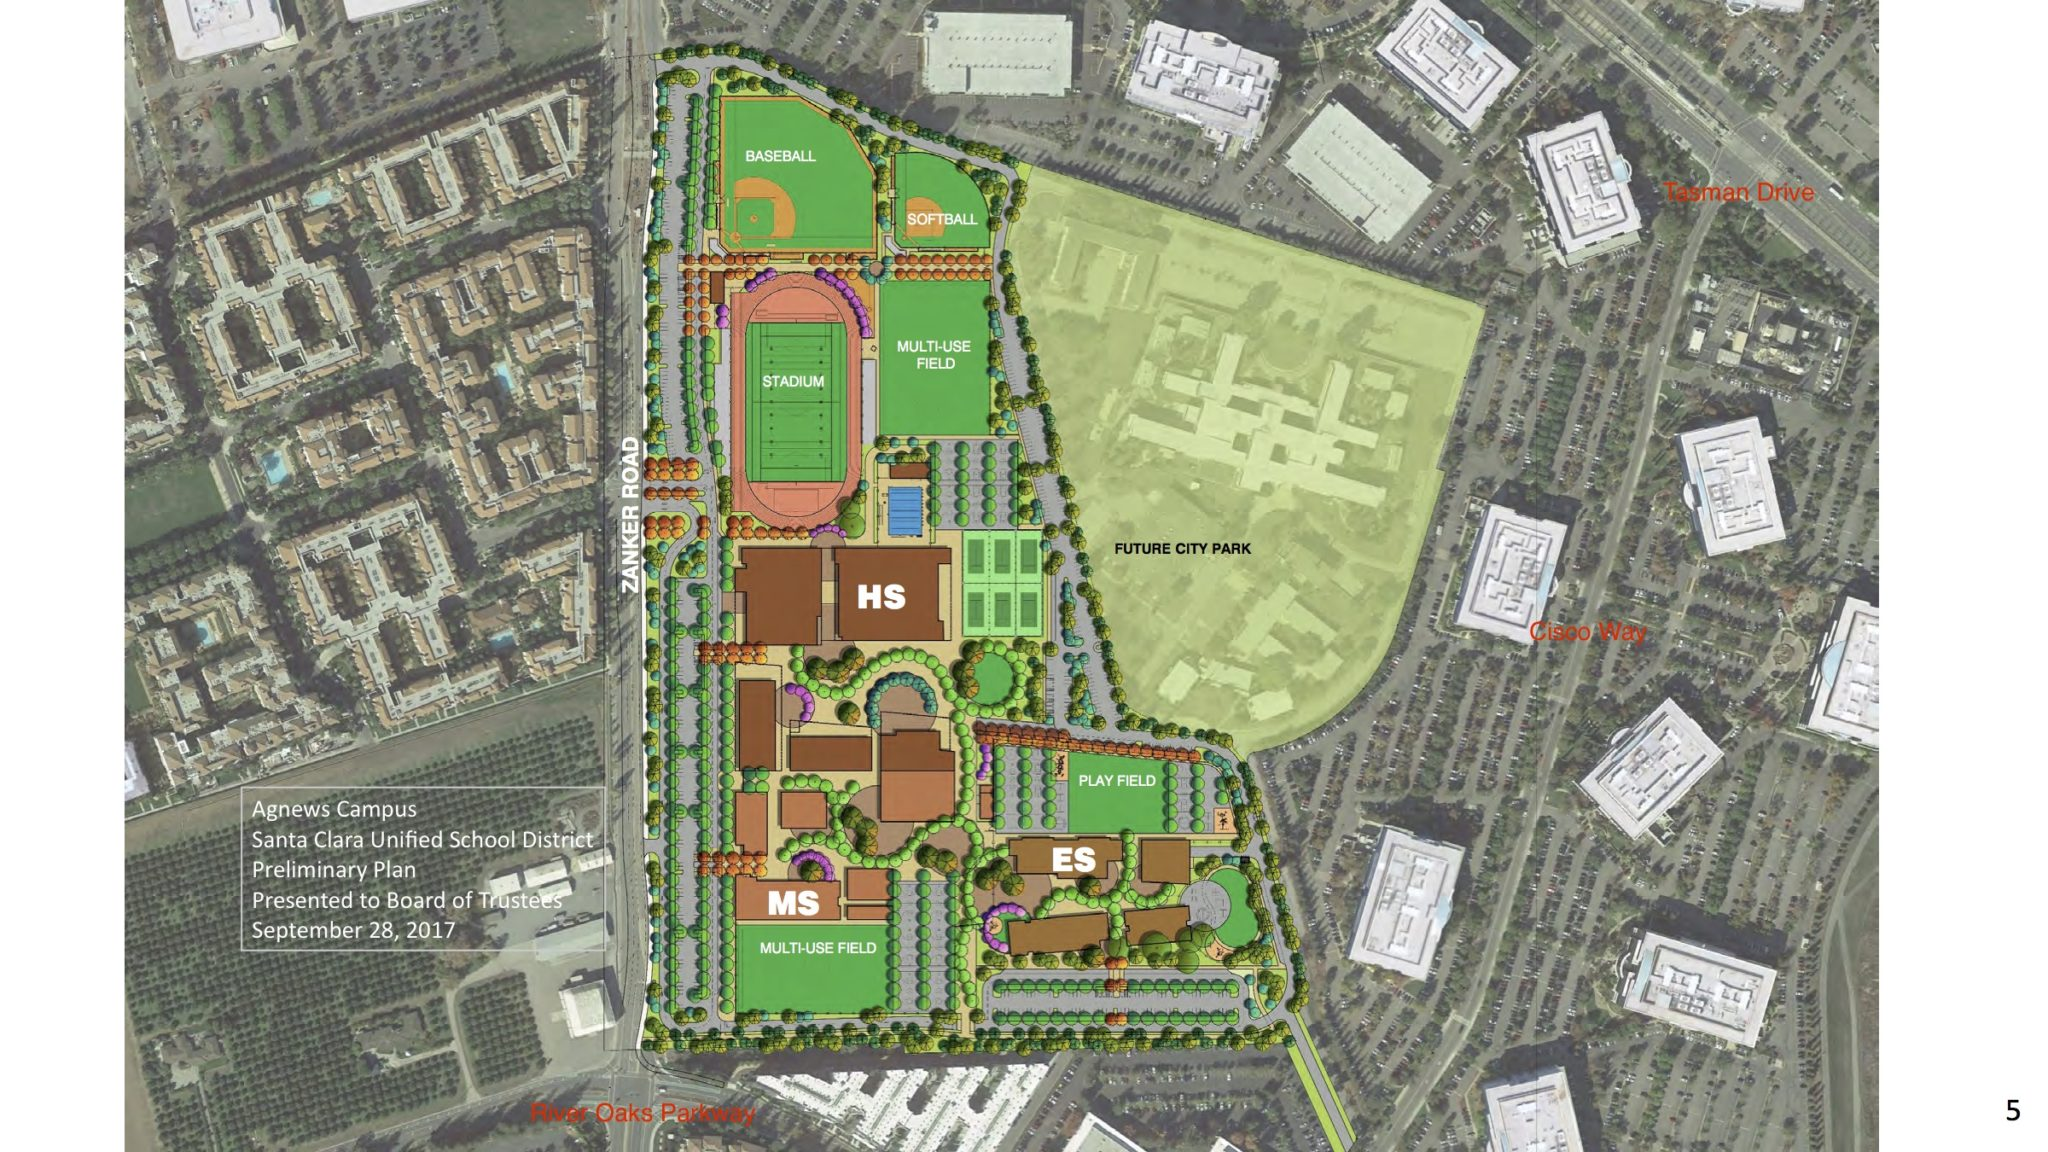 Agnews Campus Under Way - The Silicon Valley Voice on cisco headquarters, oakland a's stadium san jose, cisco campus boston, cisco campus raleigh,